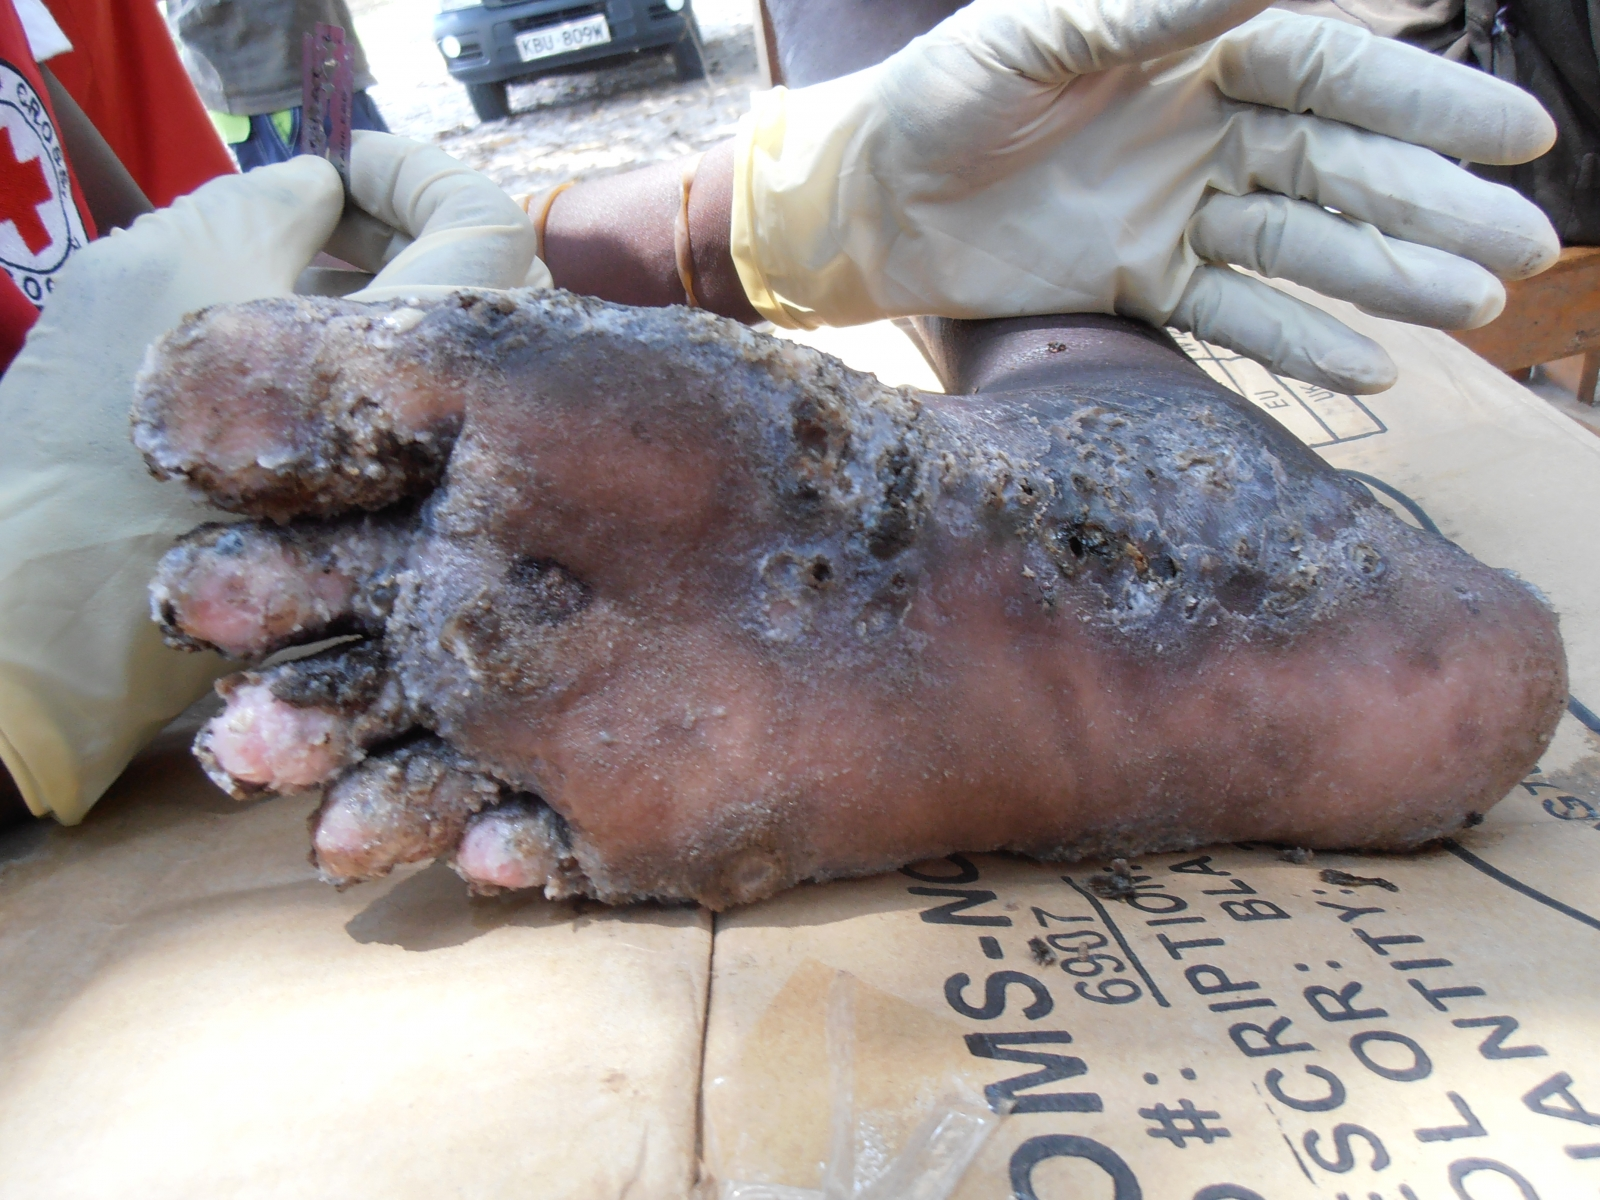 A foot infected with Tungiasis, an infestation of the skin by a burrowing cigoe or jigger flea